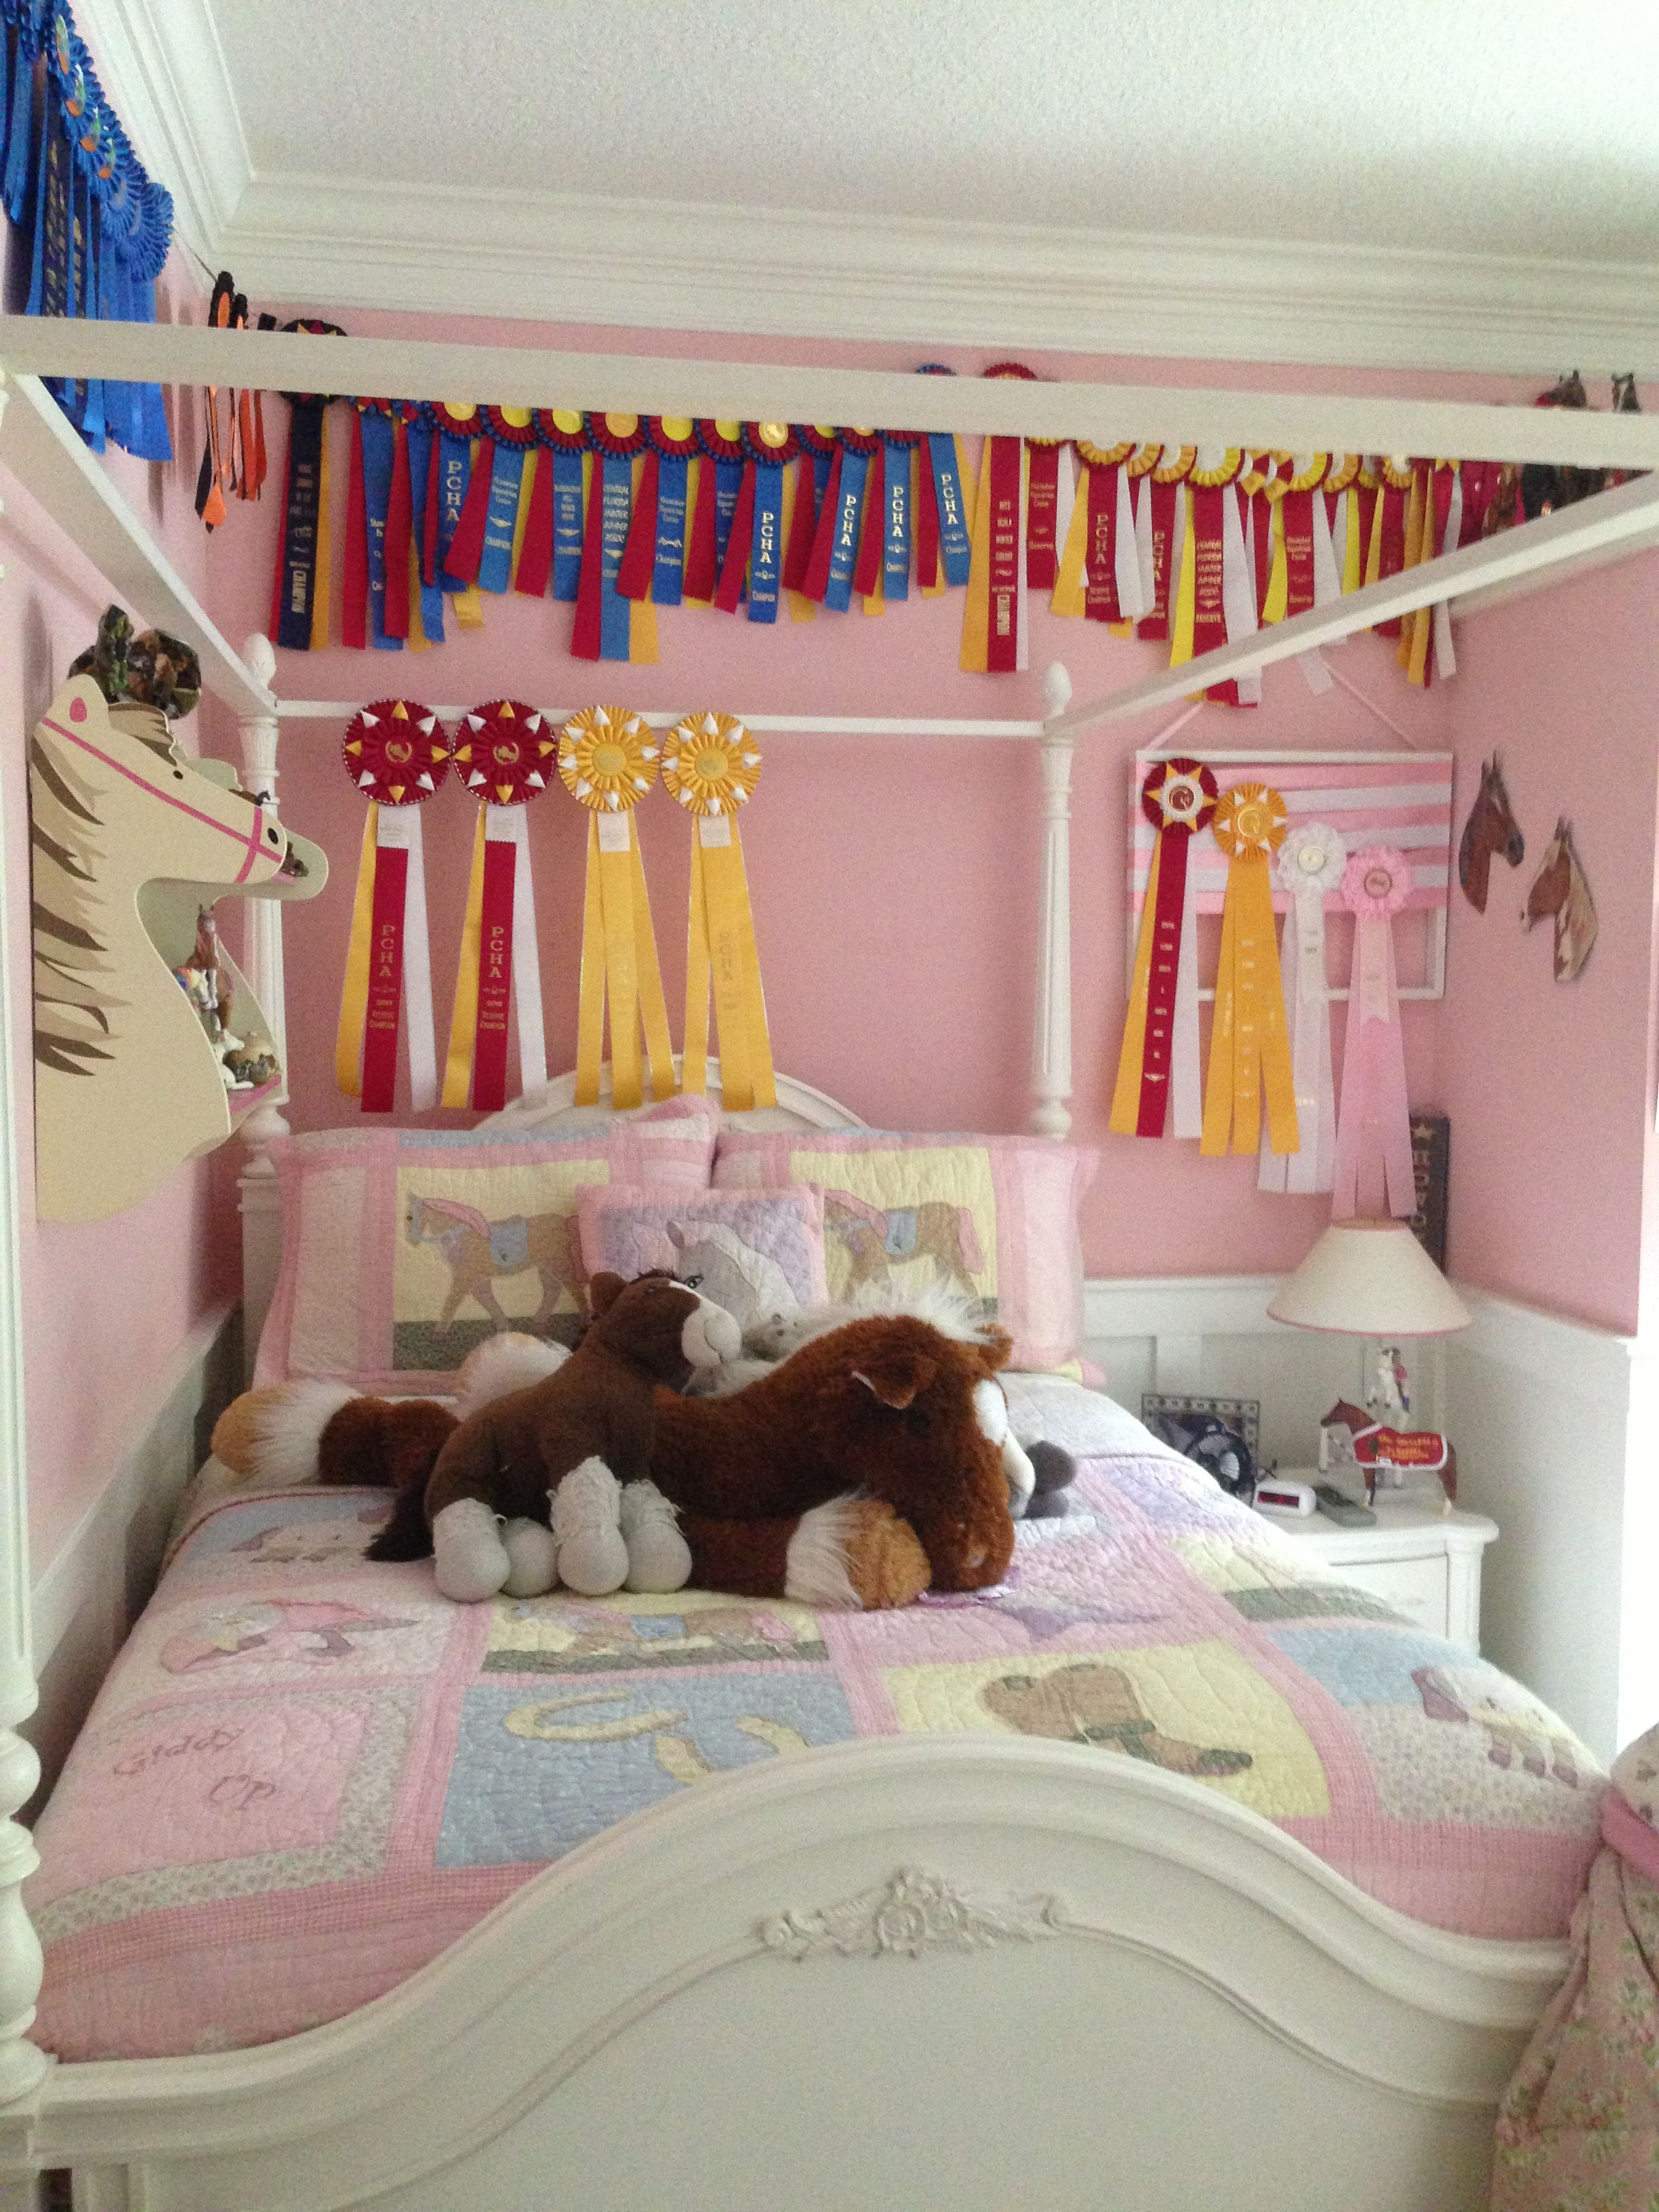 Horse Themed Bedroom For The Feminine 7-10 Year Old Crowd